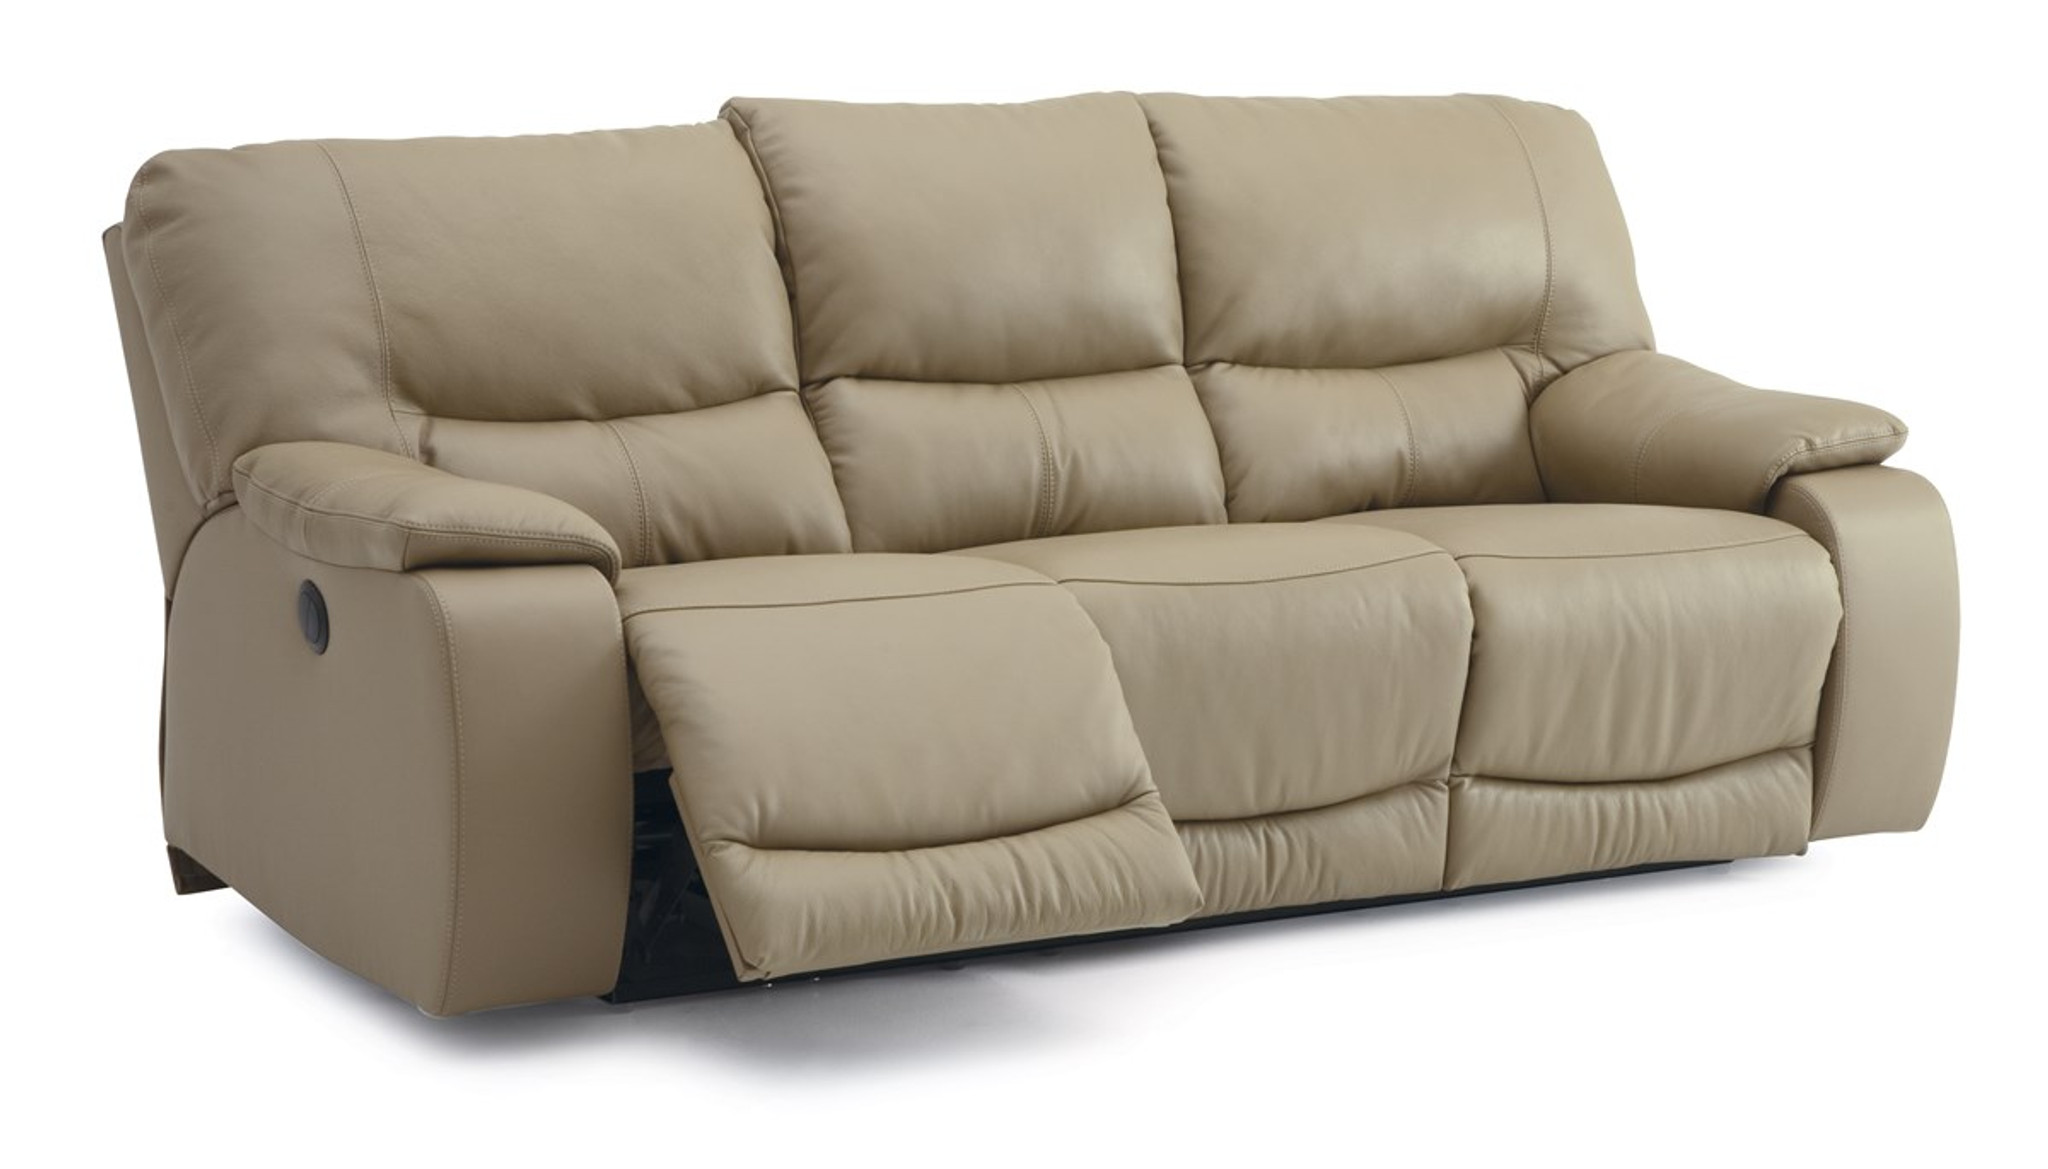 Sofa With Recliner Palliser 41031 Norwood Sofa Recliner